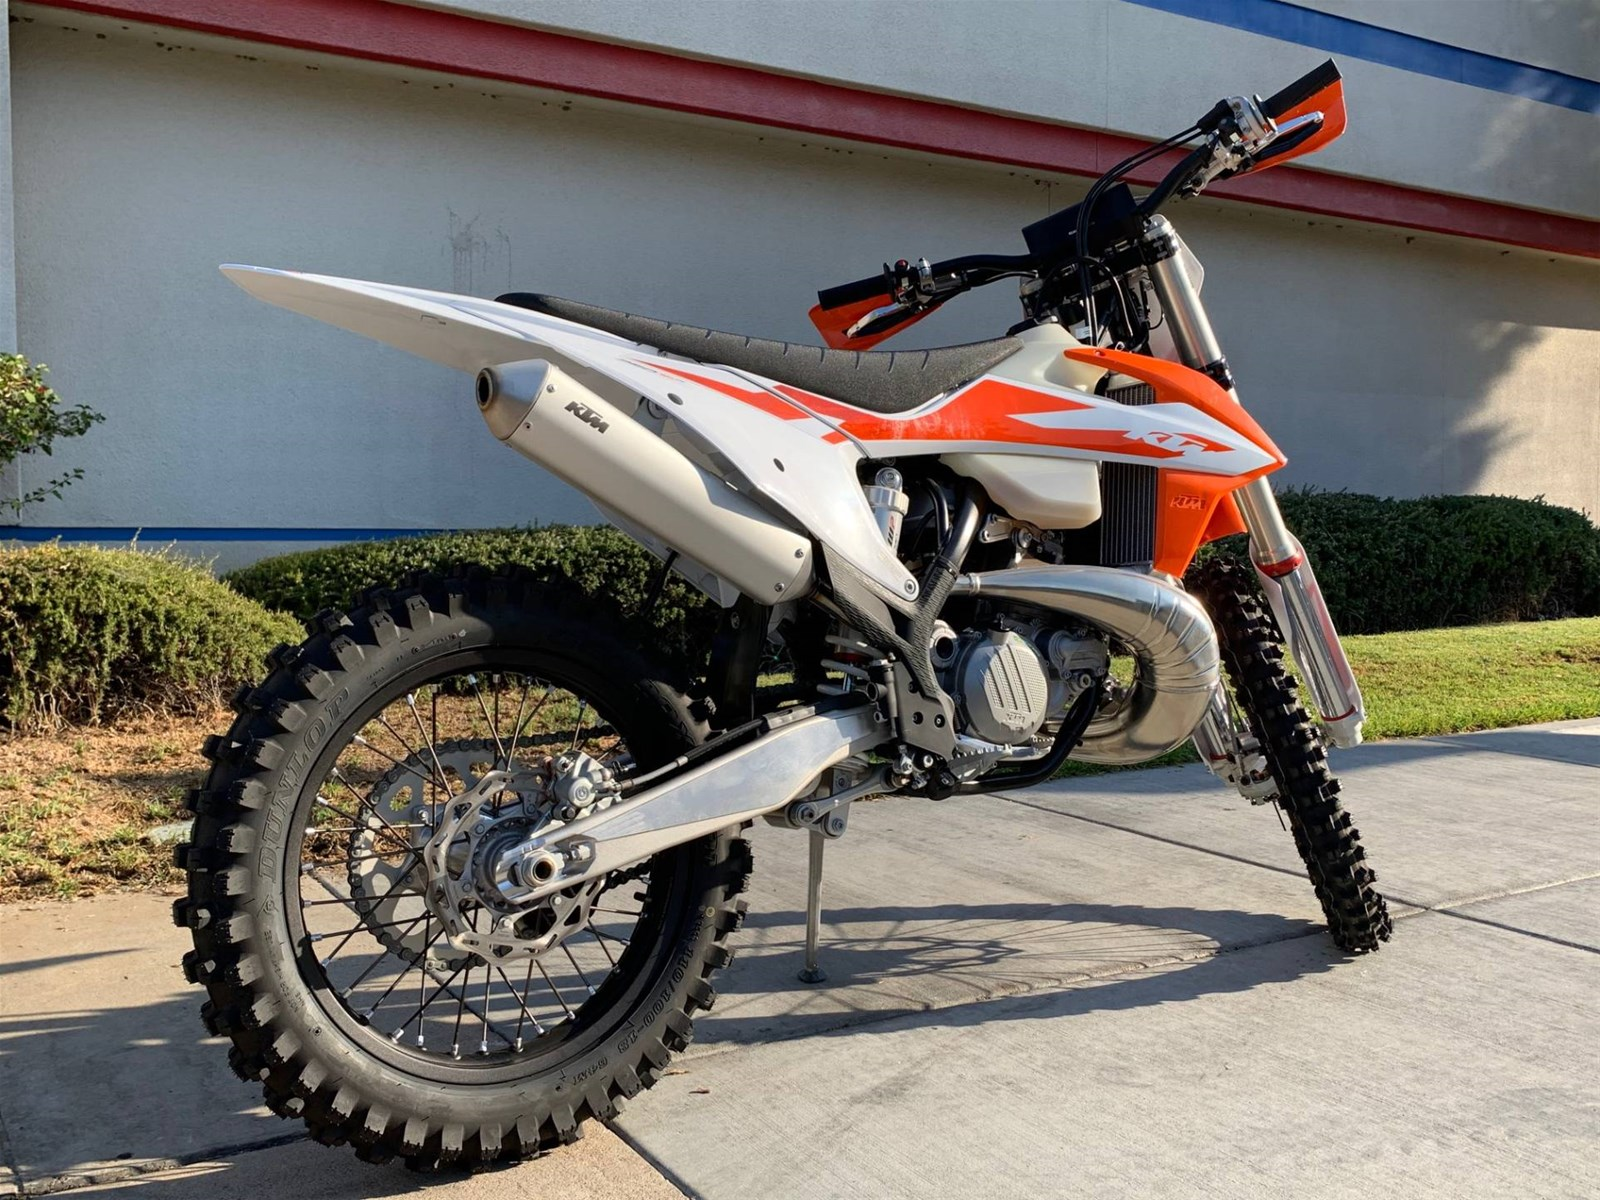 Original Offer for New 2020 KTM 250 XC TPI Motorcycle